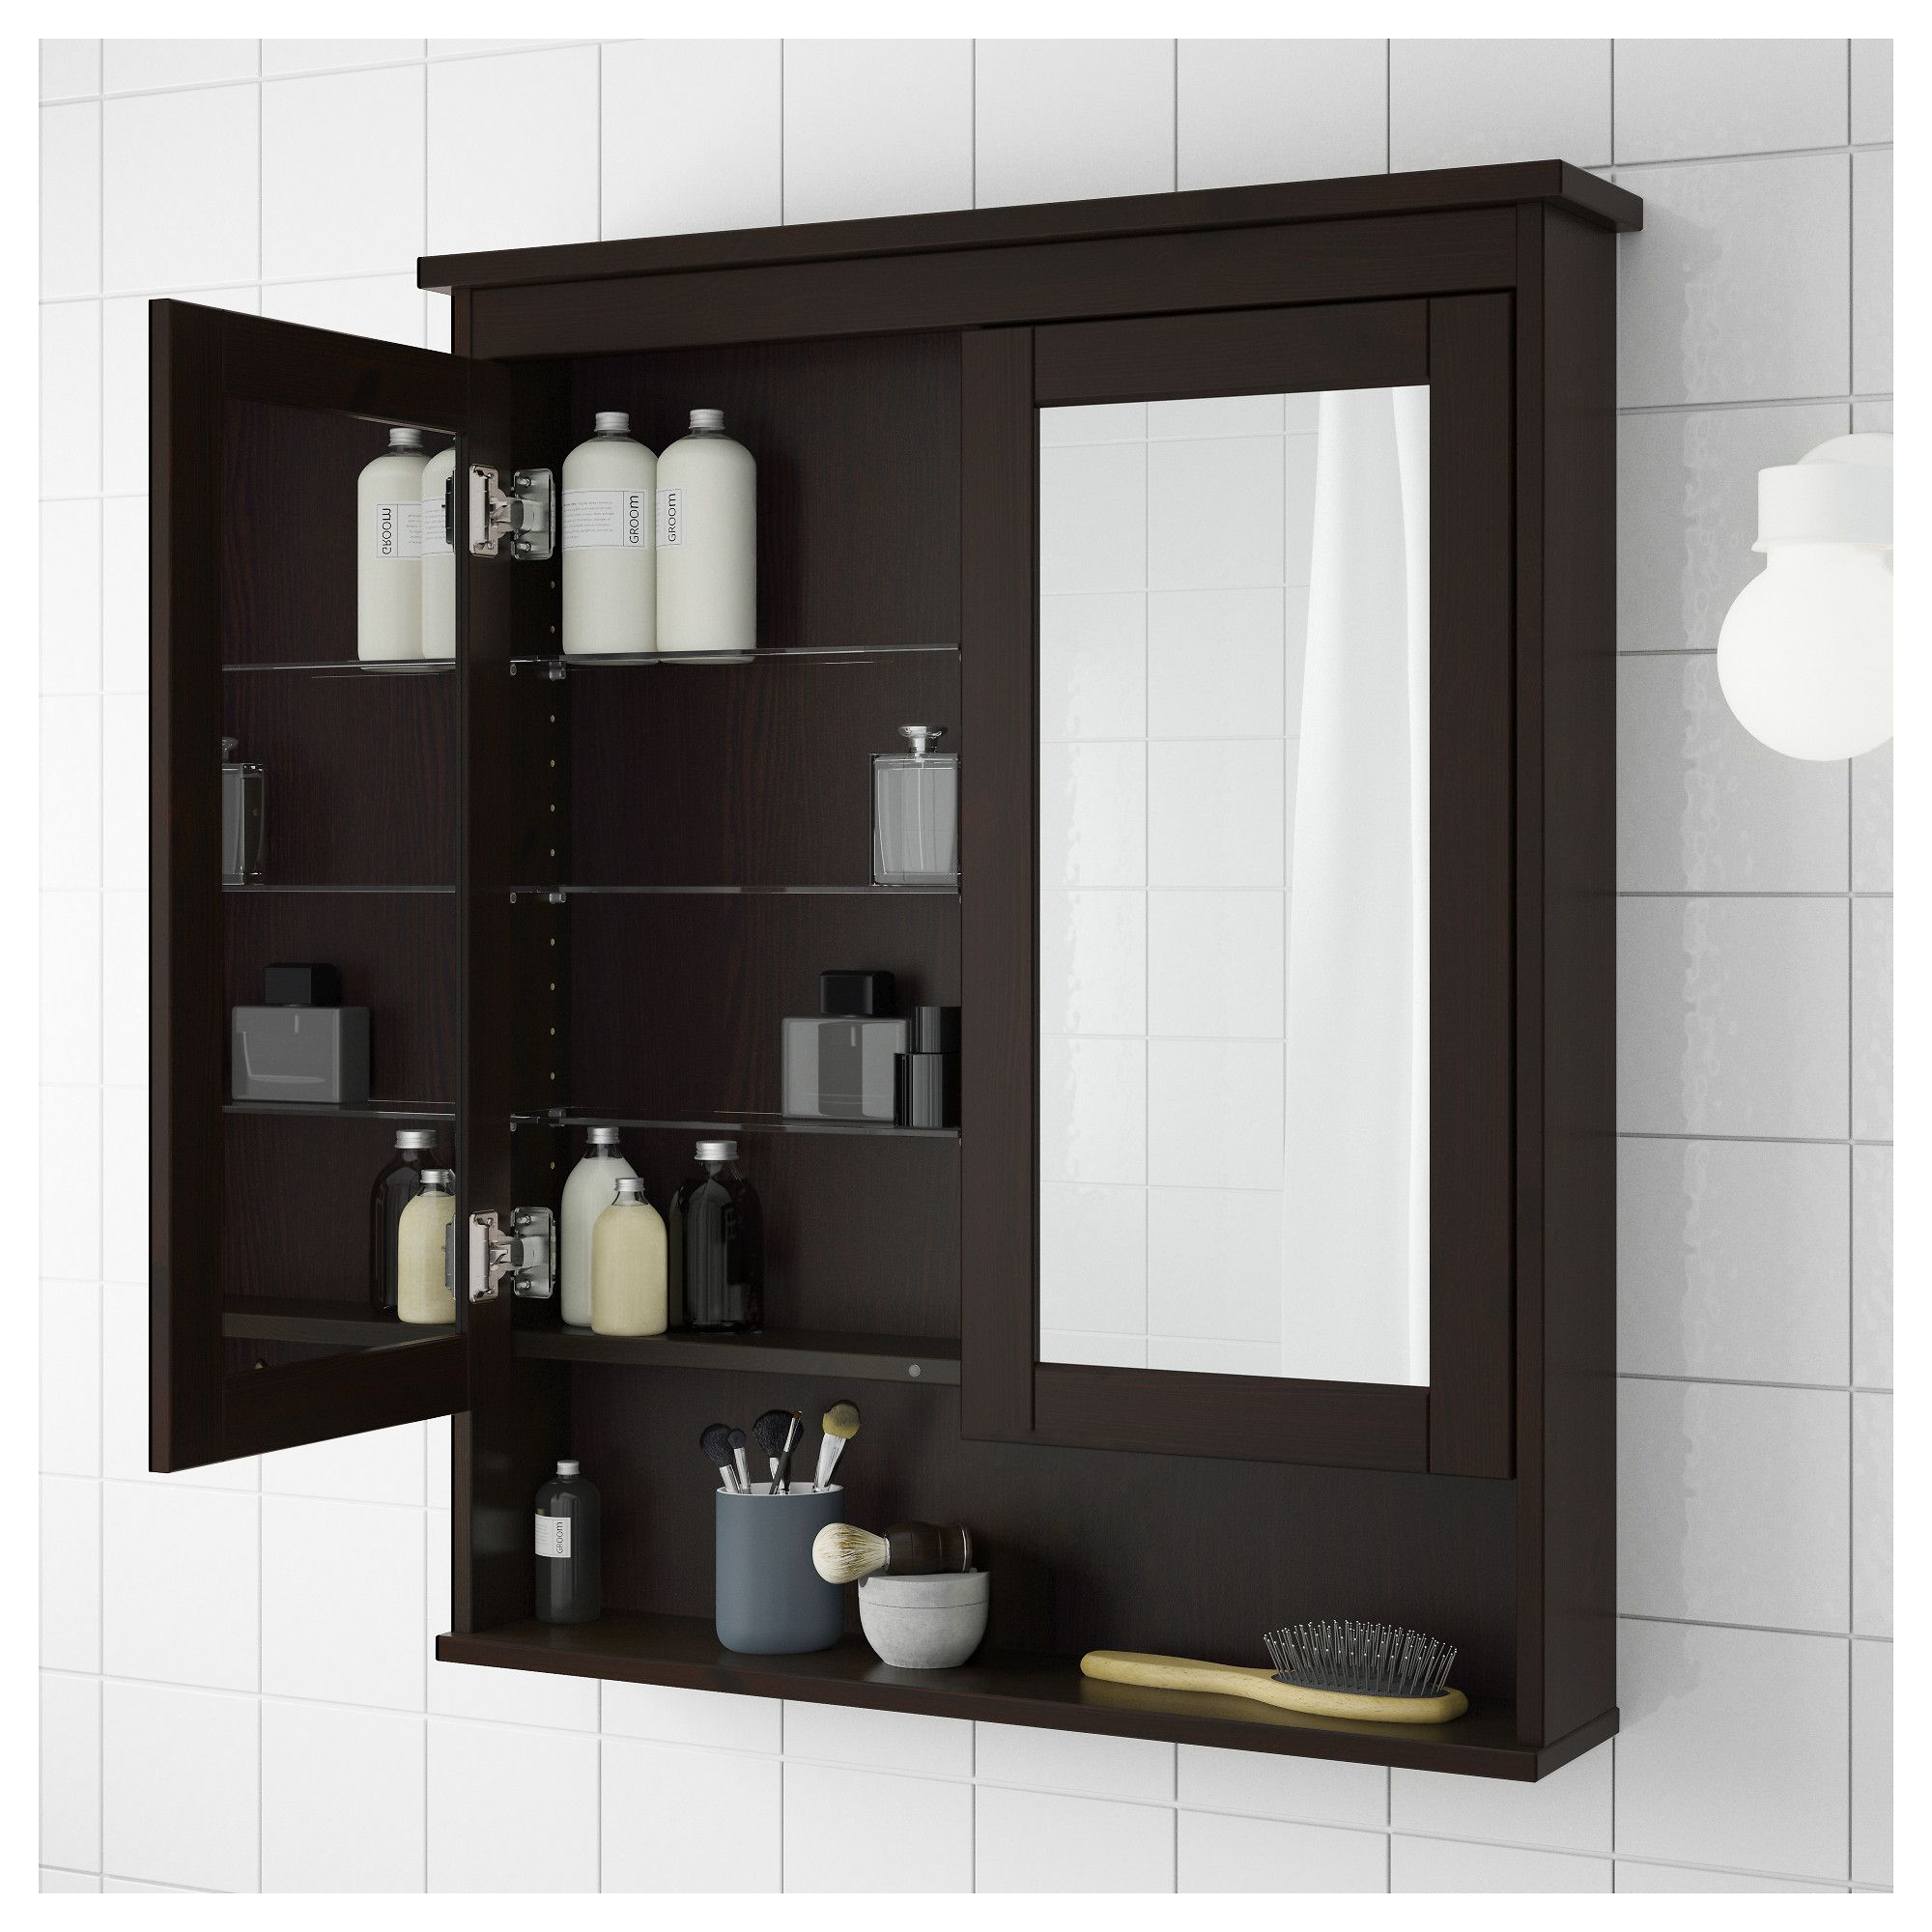 ikea bathroom cabinets with wall mirror | IKEA - HEMNES Mirror cabinet with 2 doors black-brown ...